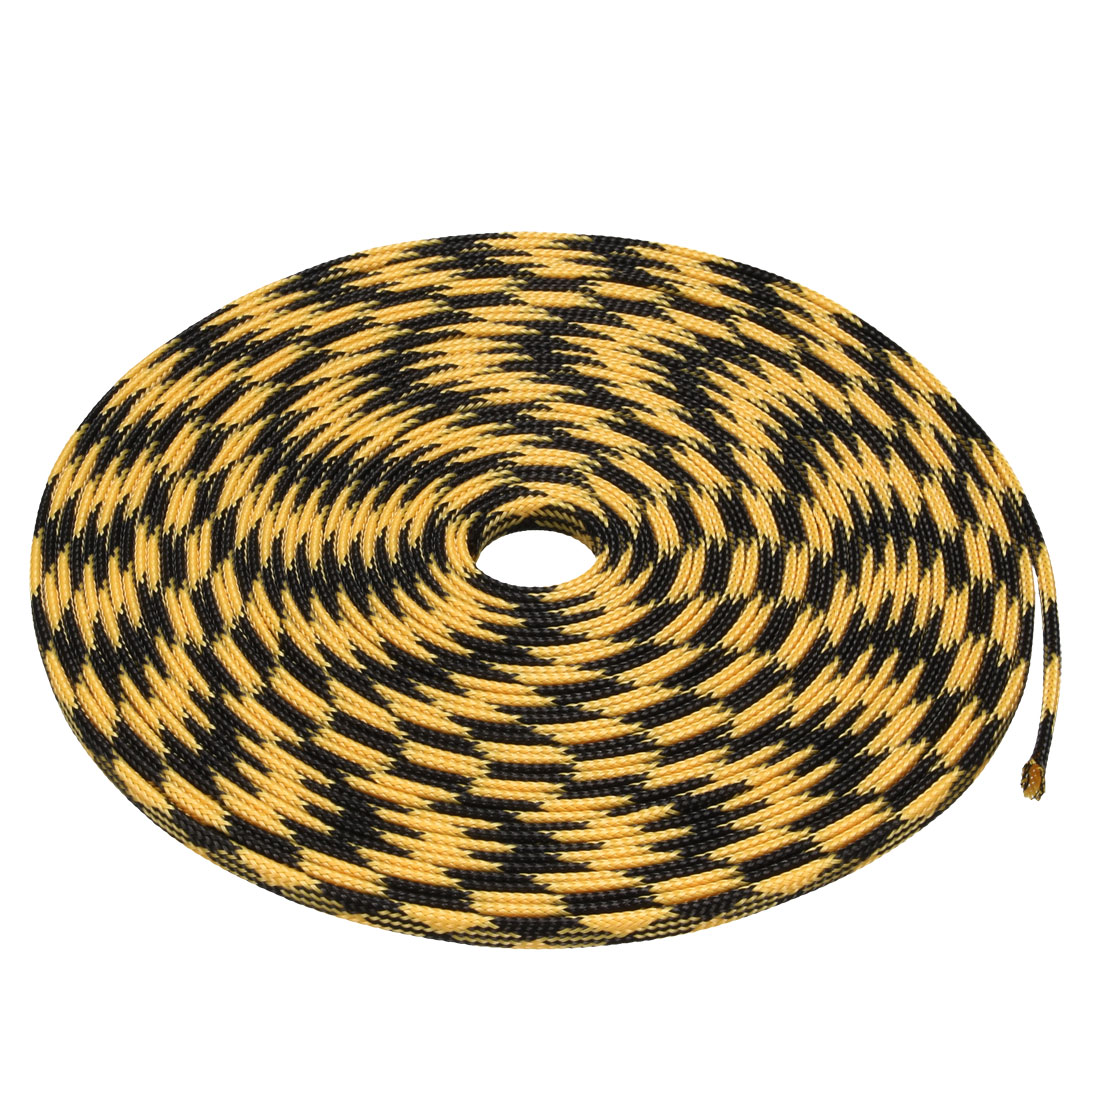 4mm Dia Tight Braided PET Expandable Sleeving Cable Wrap Sheath Black Yellow 32Ft